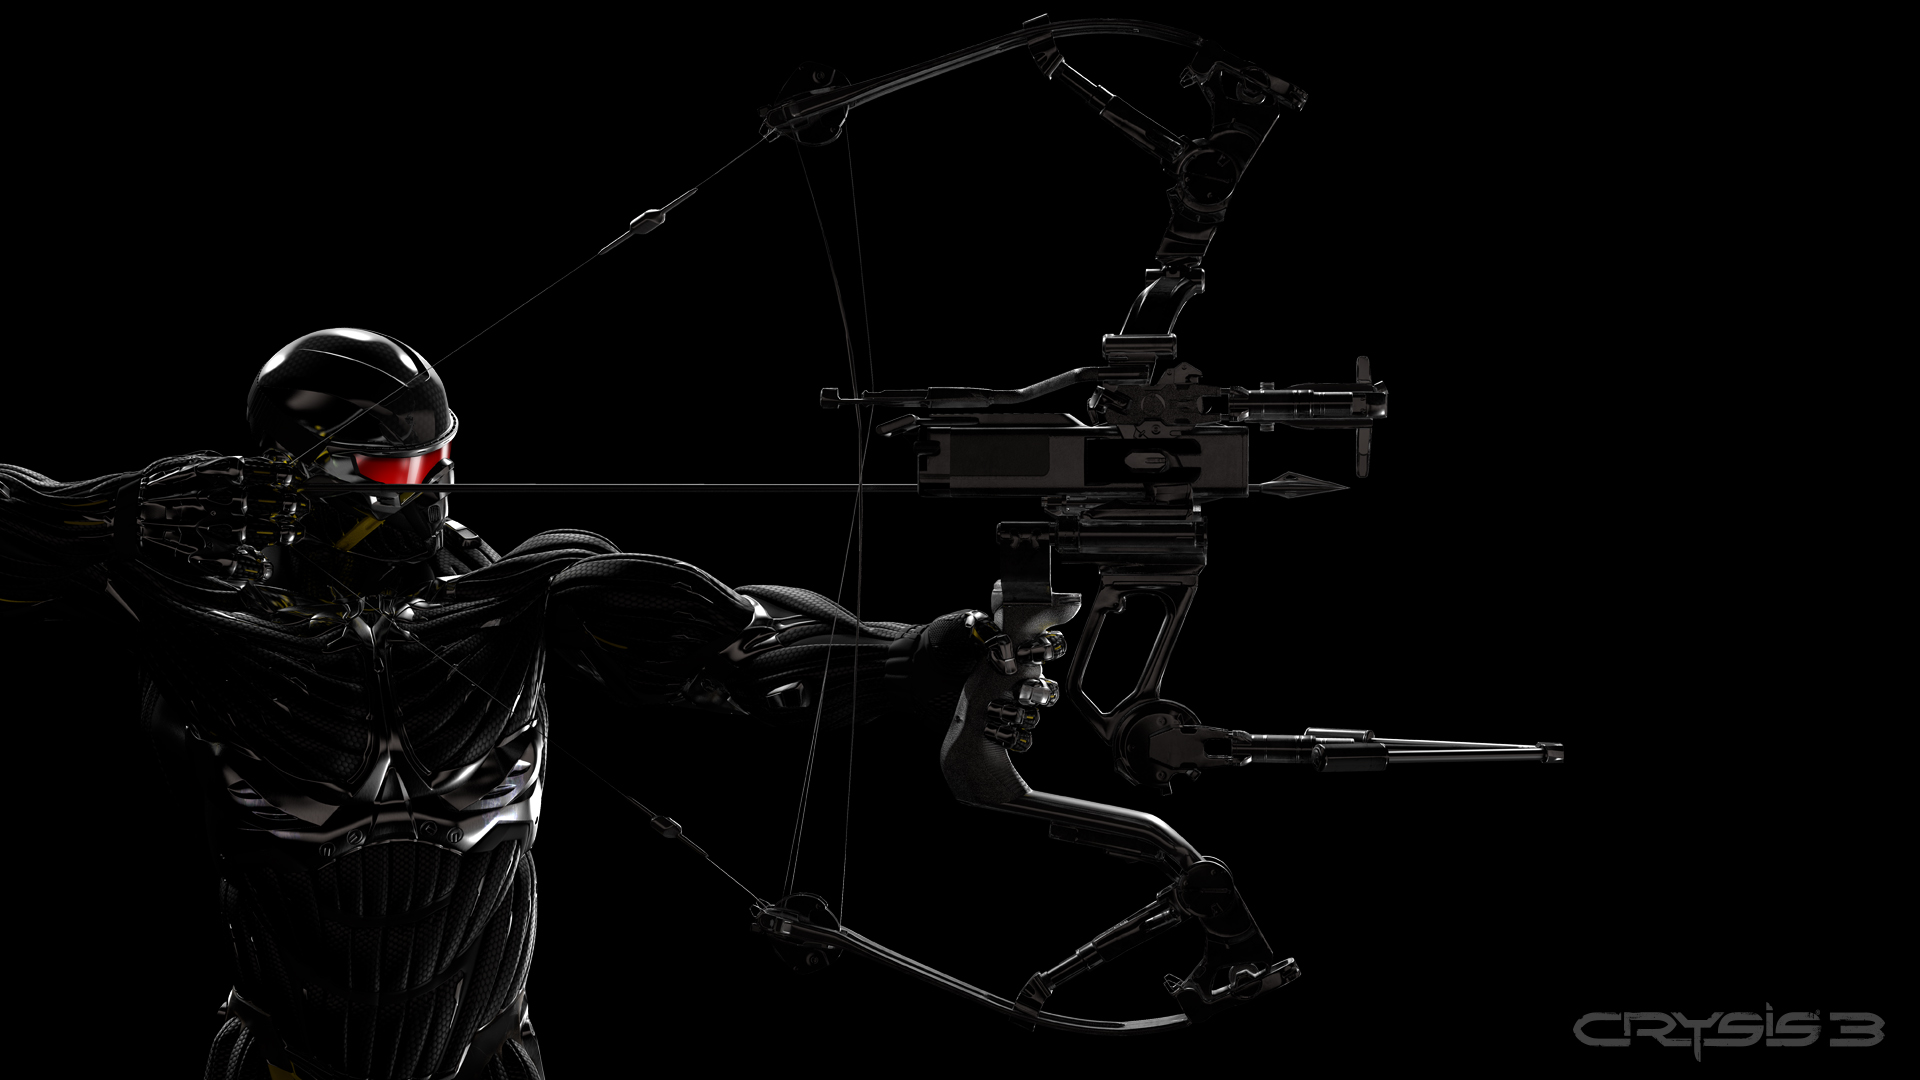 Crysis 3 Prophet and Predator Bow Wallpapers HD Wallpapers 1920x1080